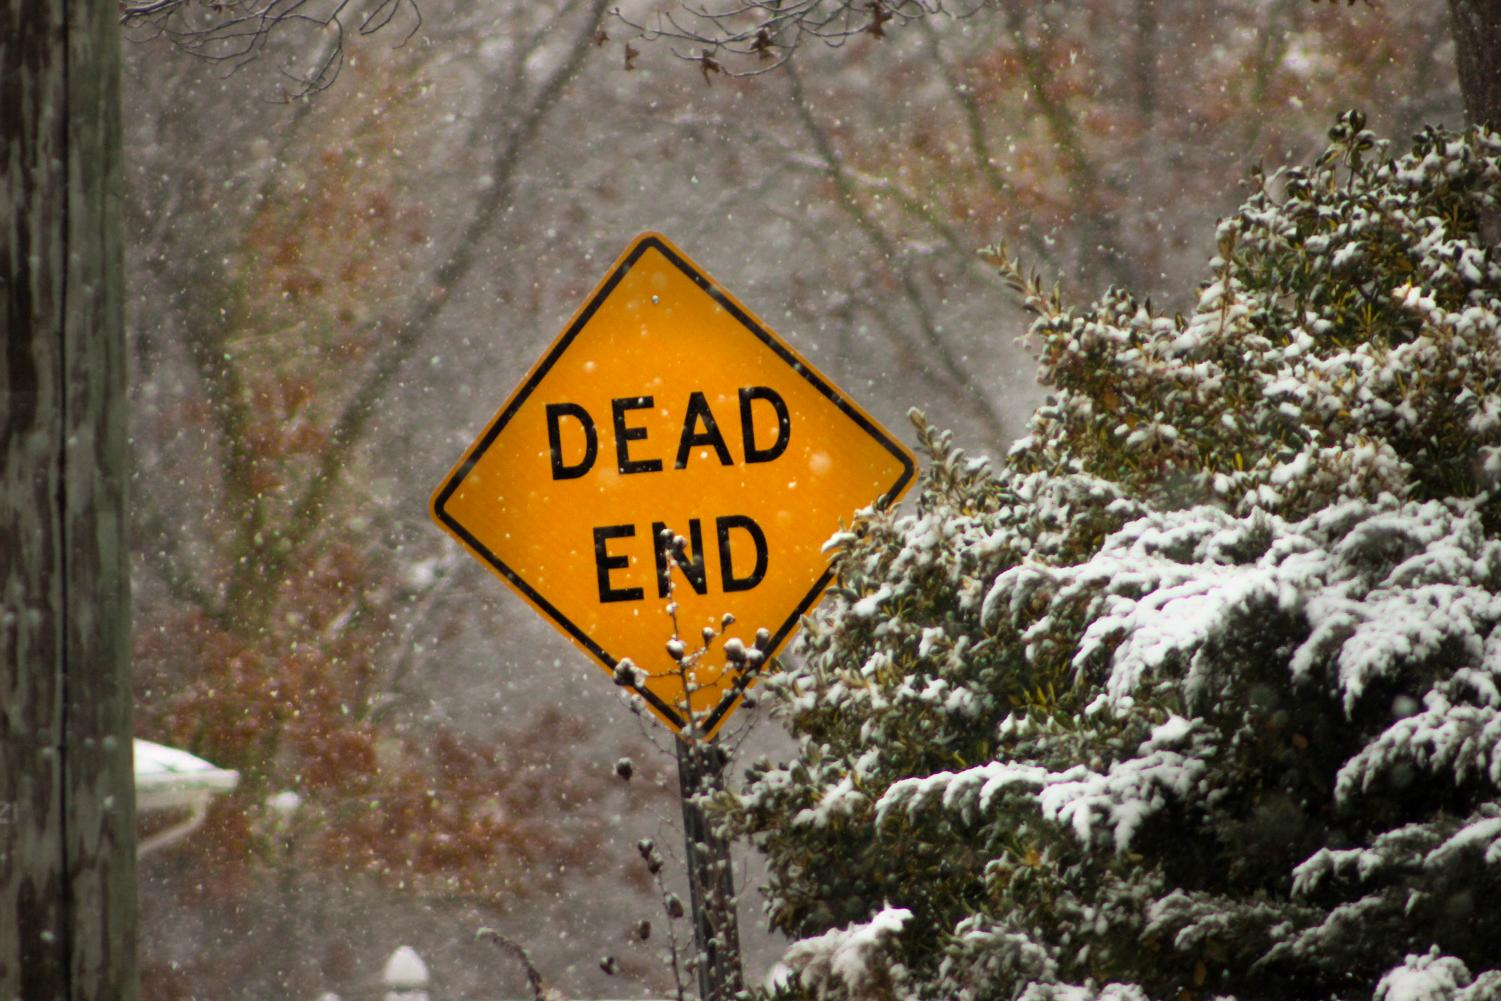 For sufferers of winter-onset seasonal affective disorder, winter can feel like a dead end.